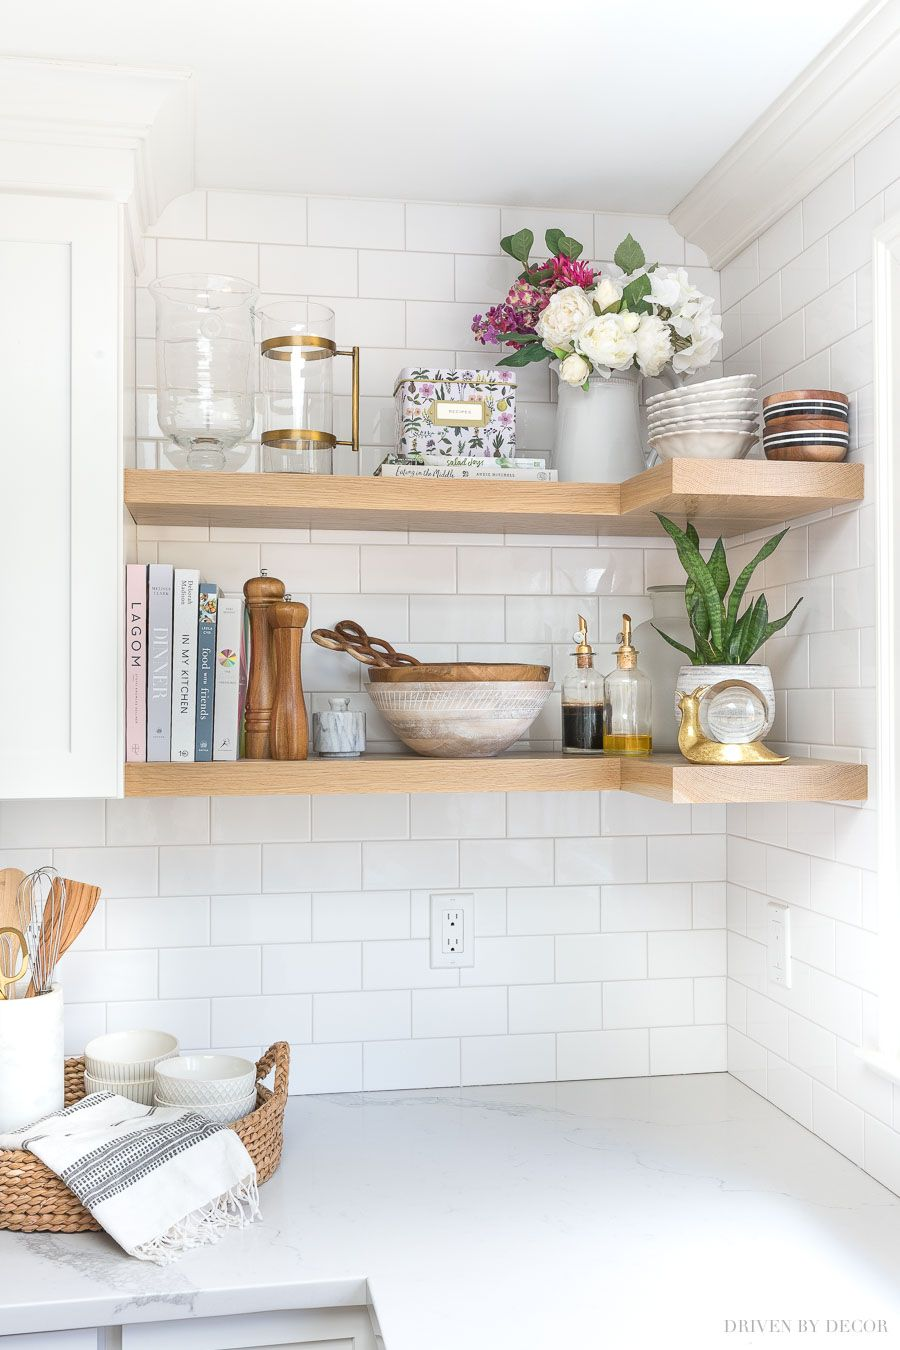 The Floating Corner Shelves in Our Kitchen - All the Details